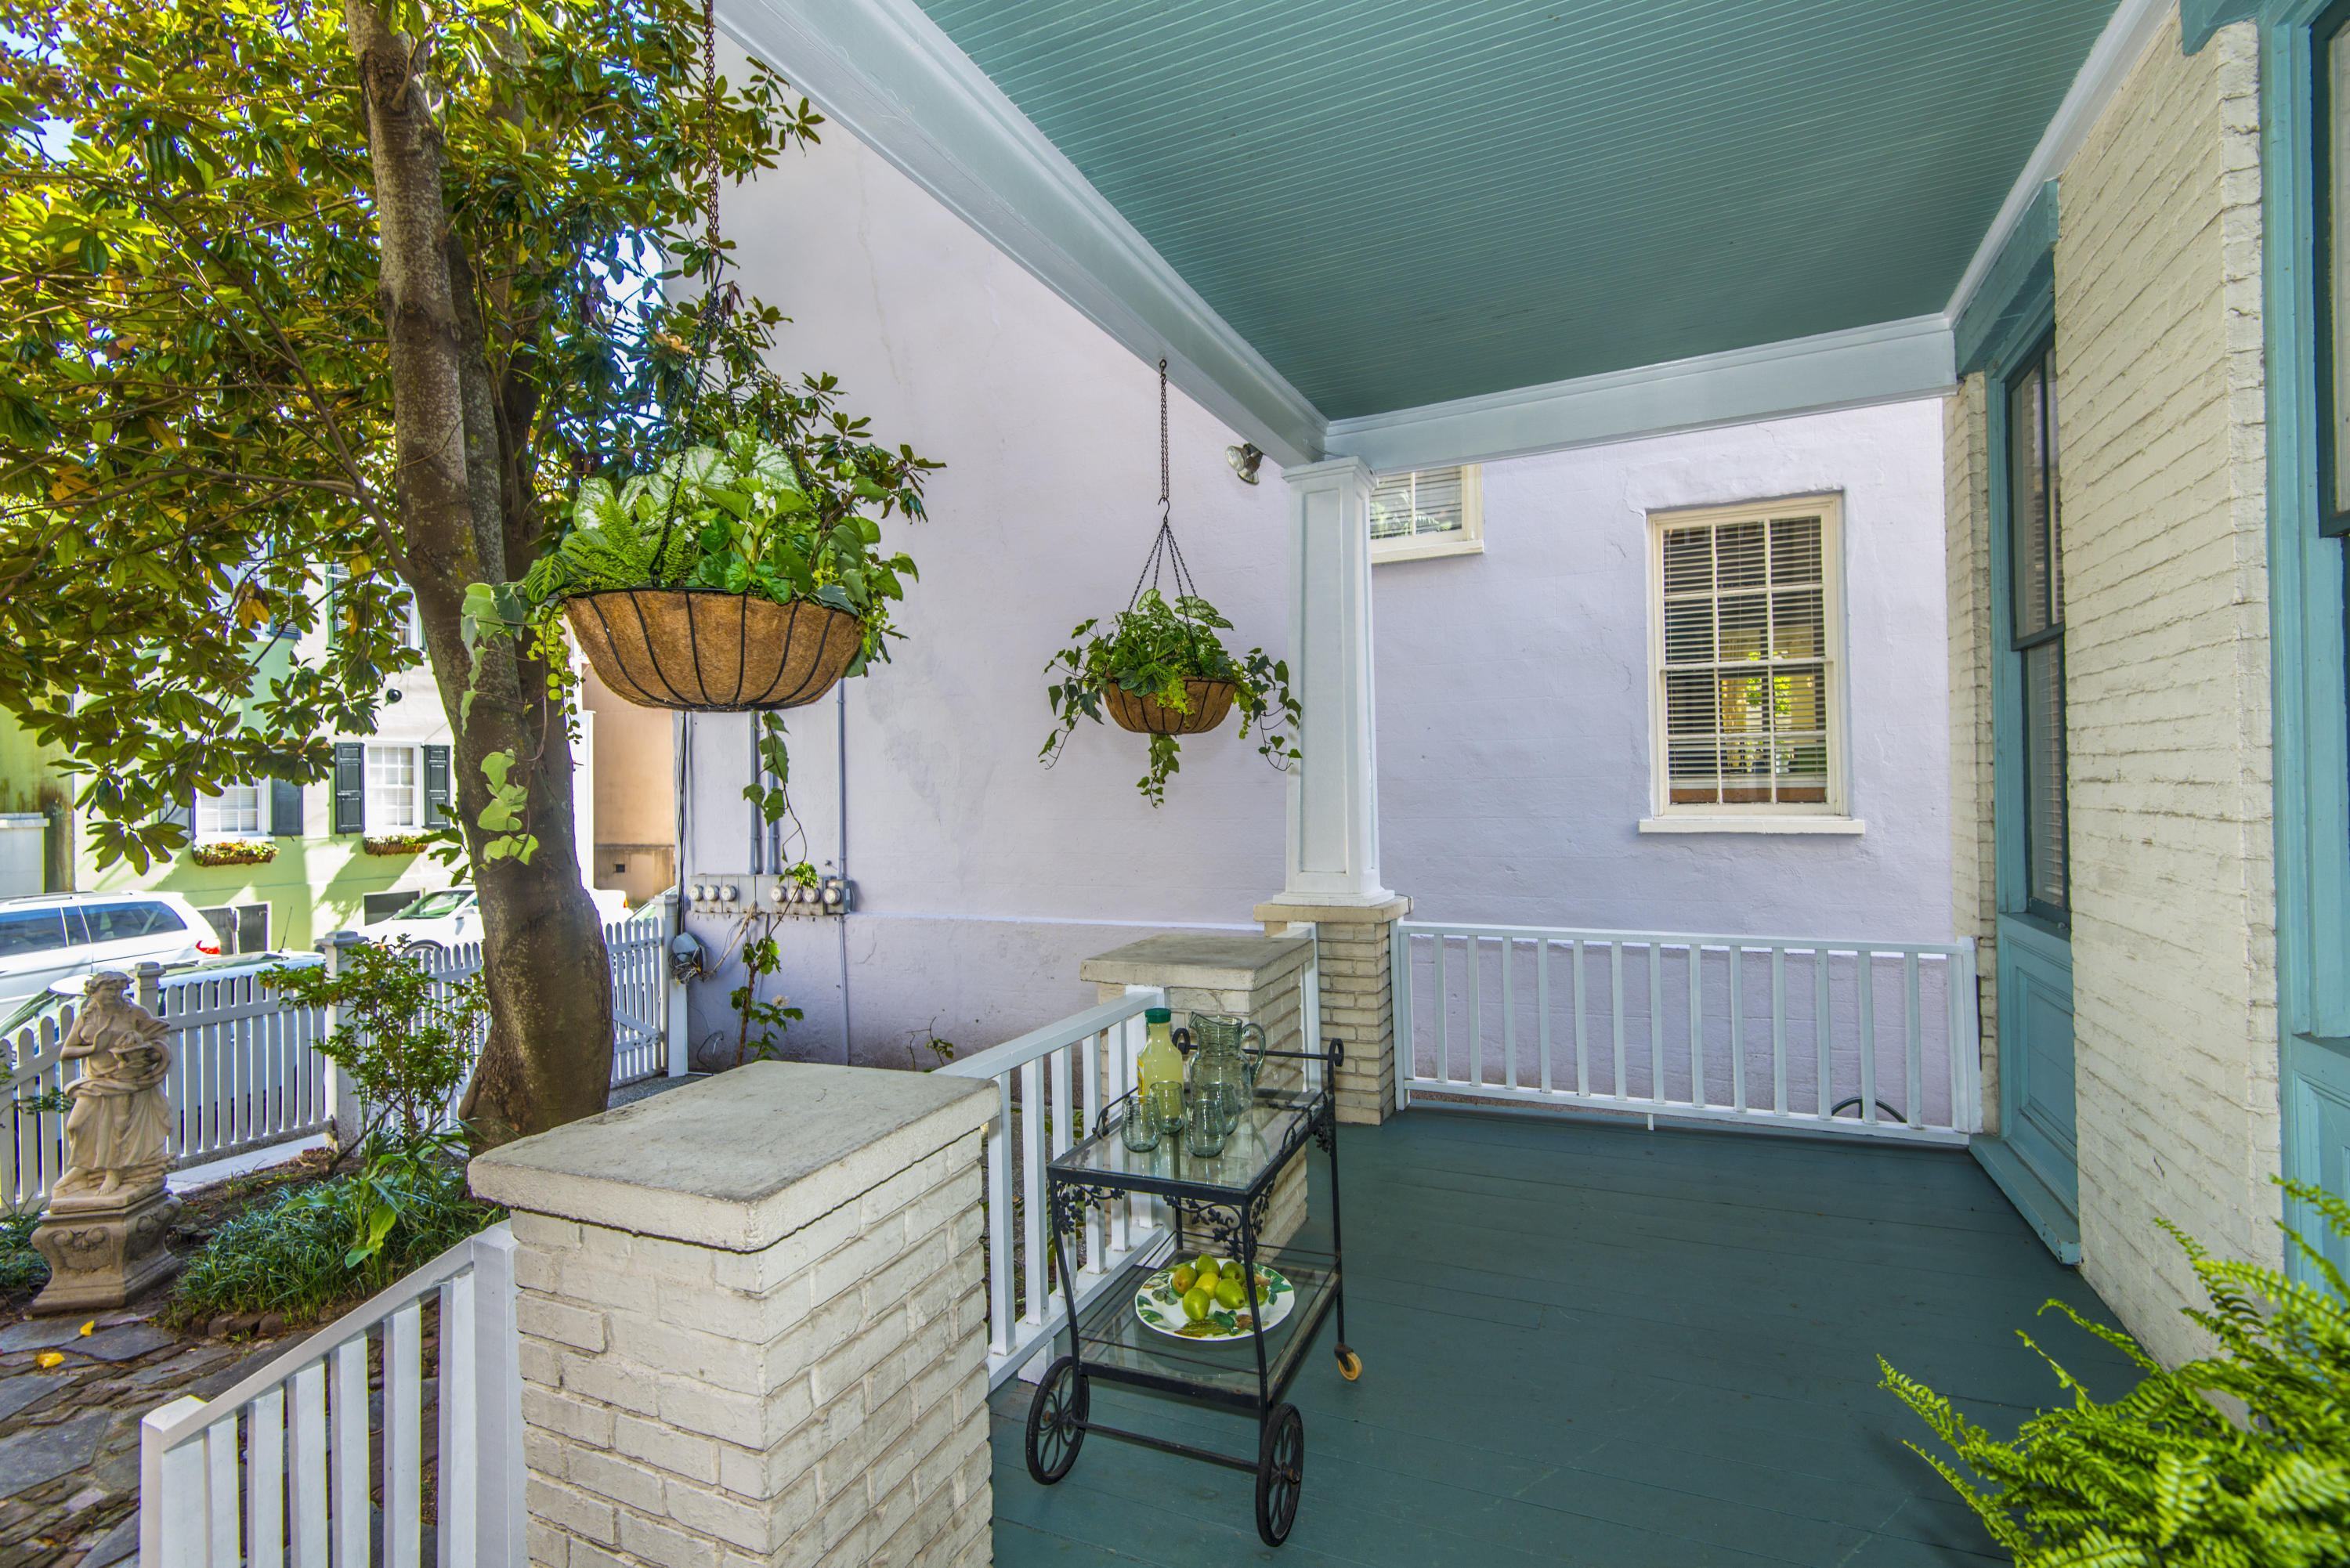 Home for sale 78 Society , Downtown, Downtown Charleston, SC